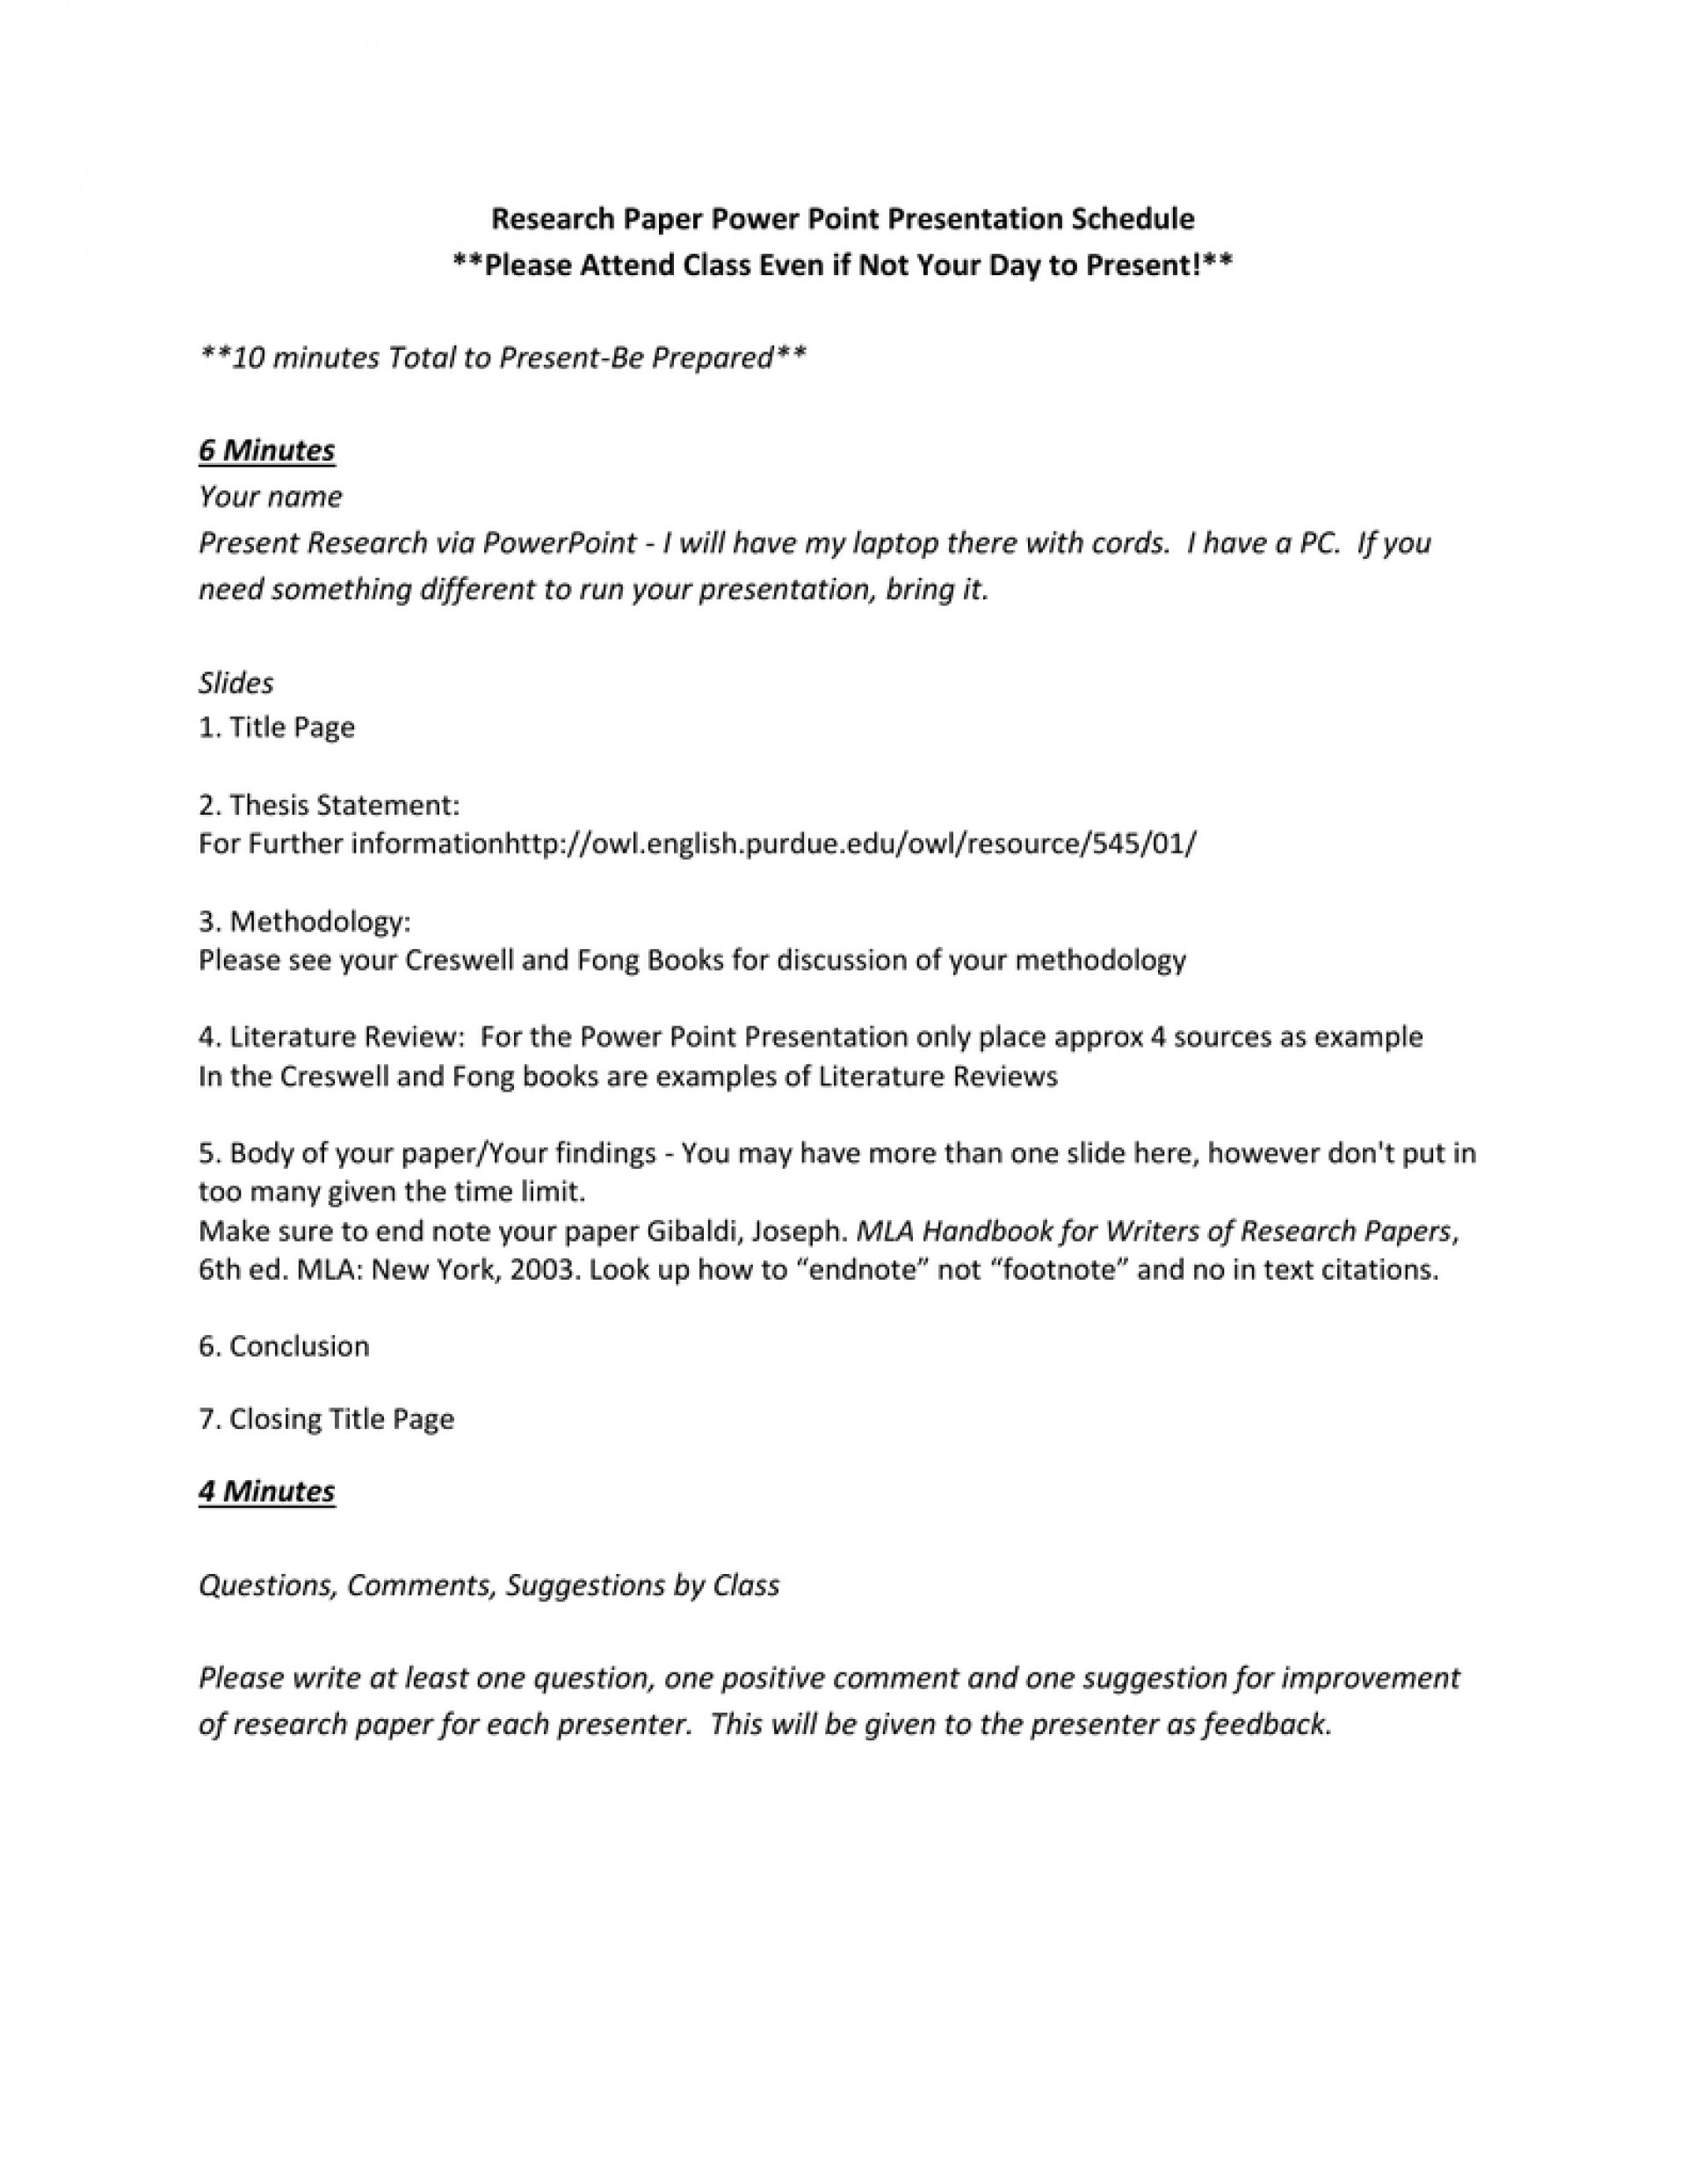 012 Research Paper 009781447 1 How To Make Staggering Ppt Prepare A Powerpoint Presentation 1920